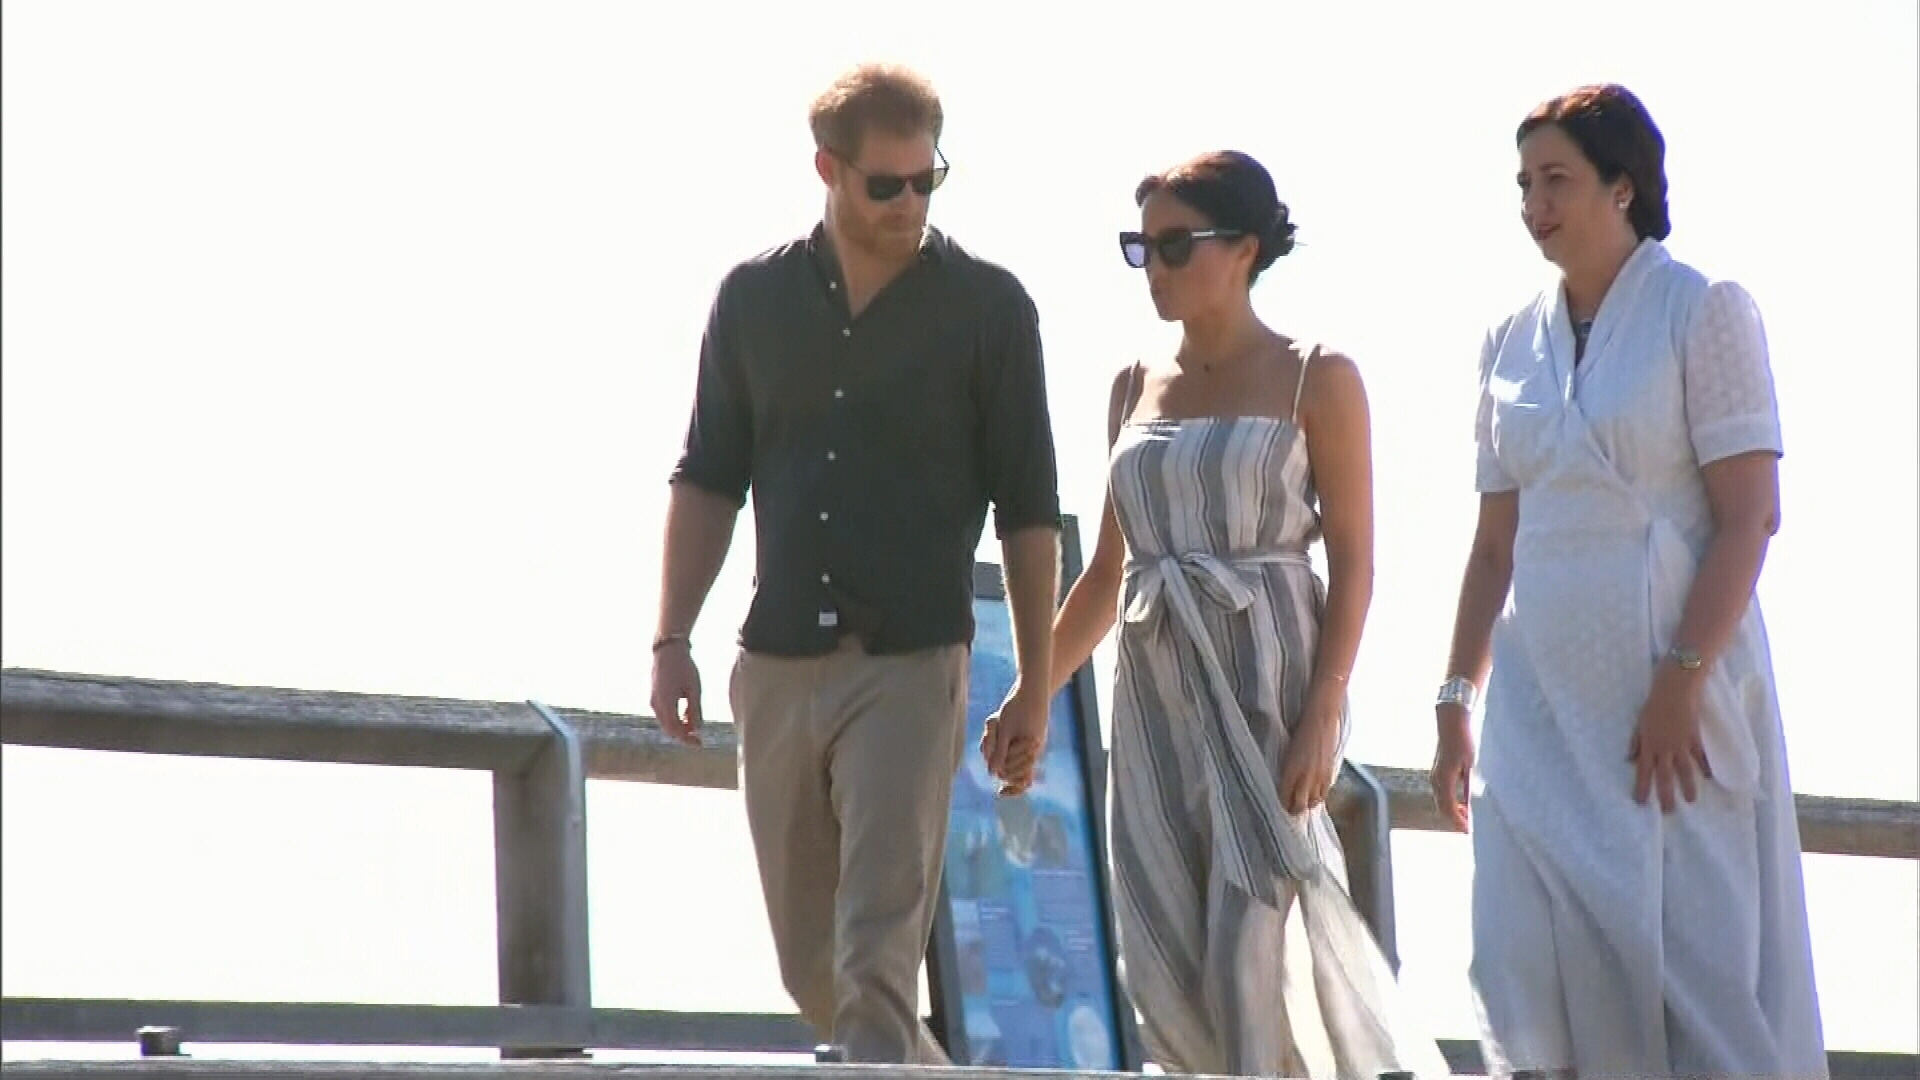 Harry and Meghan head off on visit to Fiji